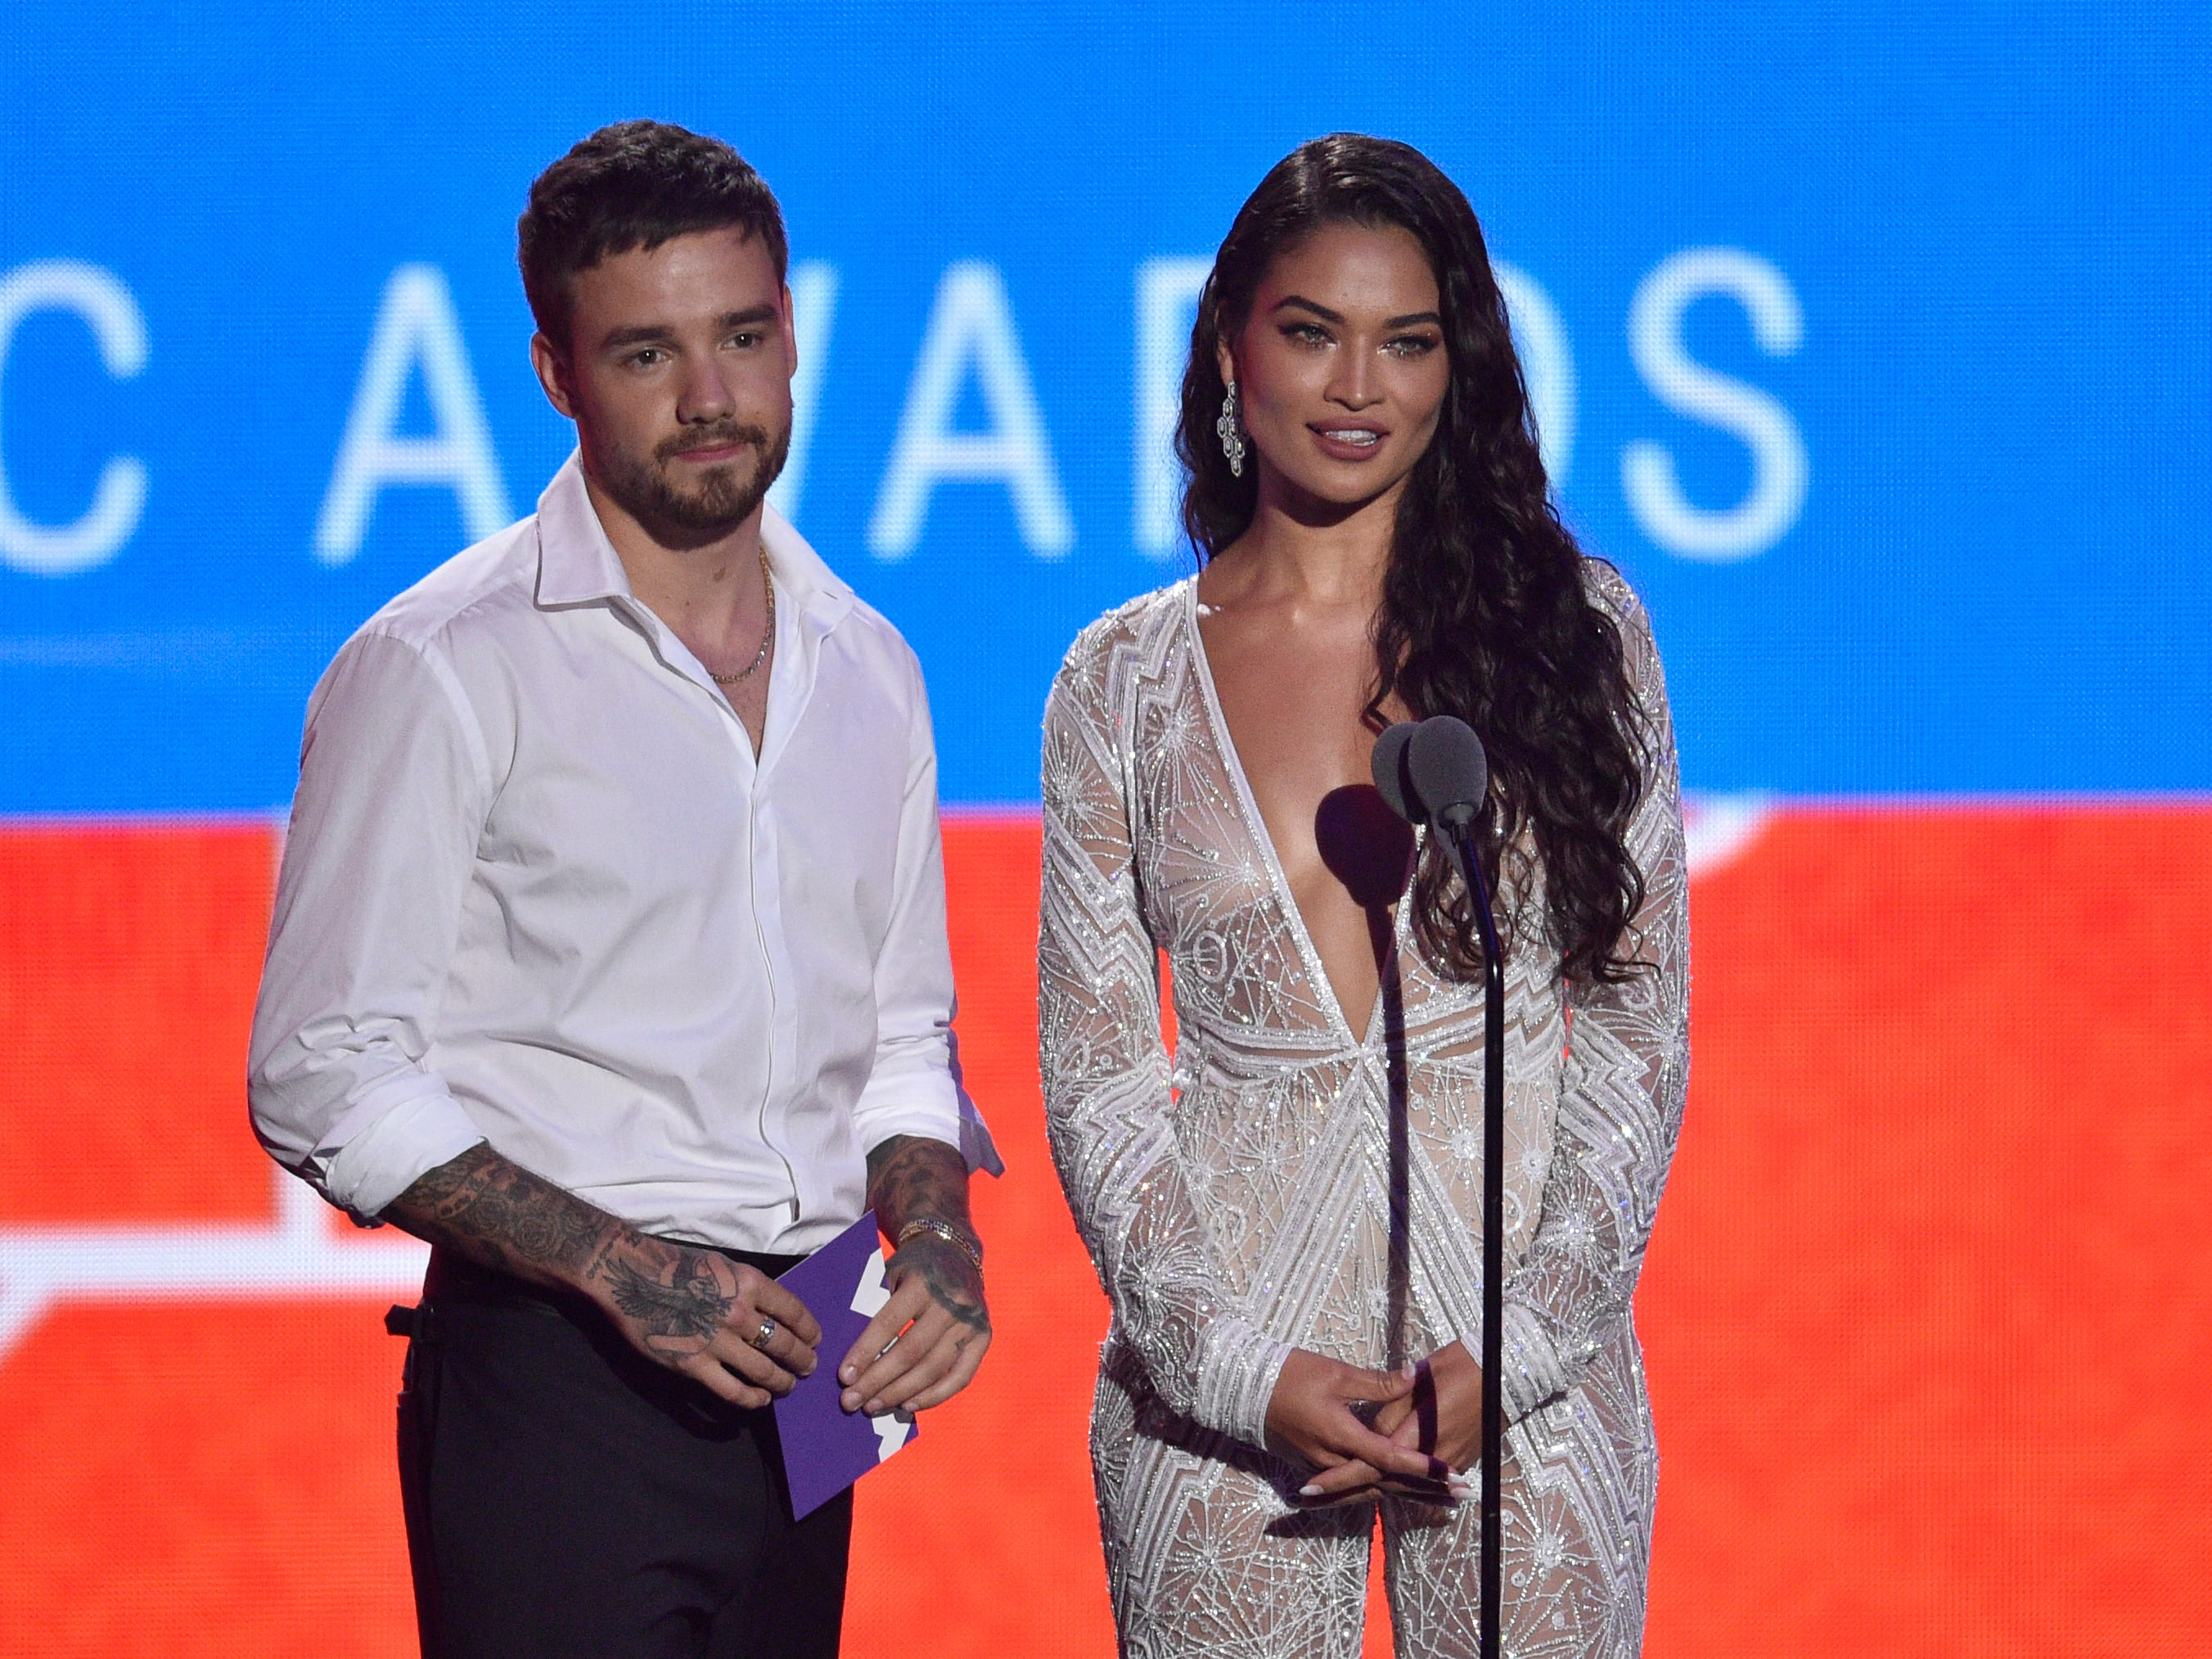 Liam Payne, left, and Shanina Shaik speak at the MTV Video Music Awards at Radio City Music Hall on Monday, Aug. 20, 2018, in New York. (Photo by Chris Pizzello/Invision/AP) ORG XMIT: CAPM264